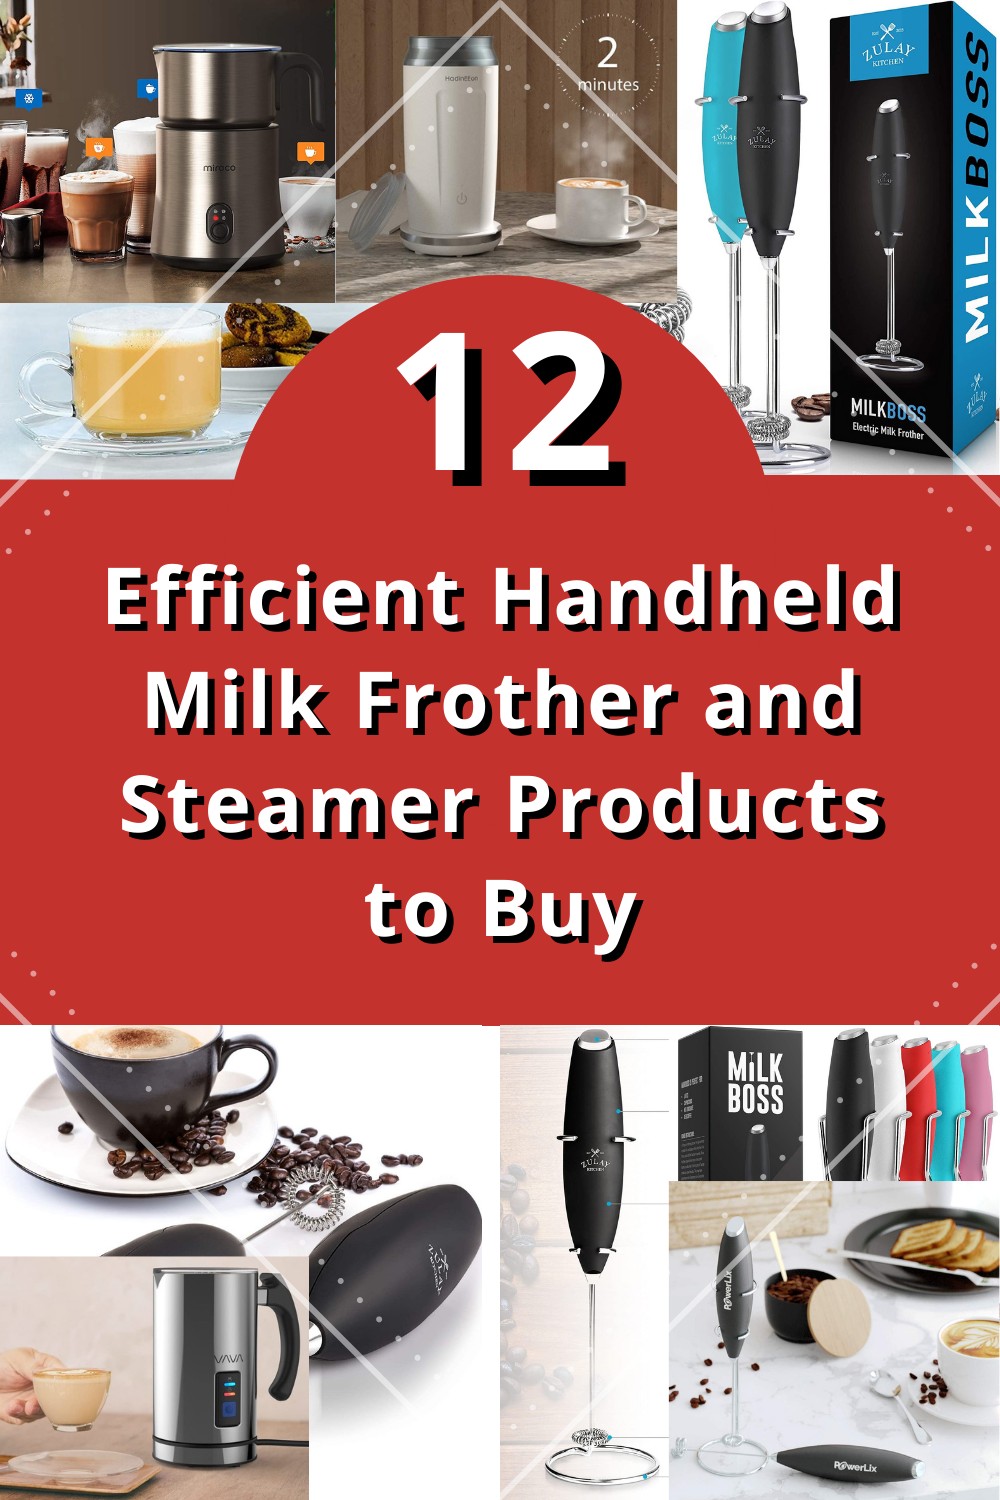 12 Efficient Handheld Milk Frother and Steamer Products to Buy